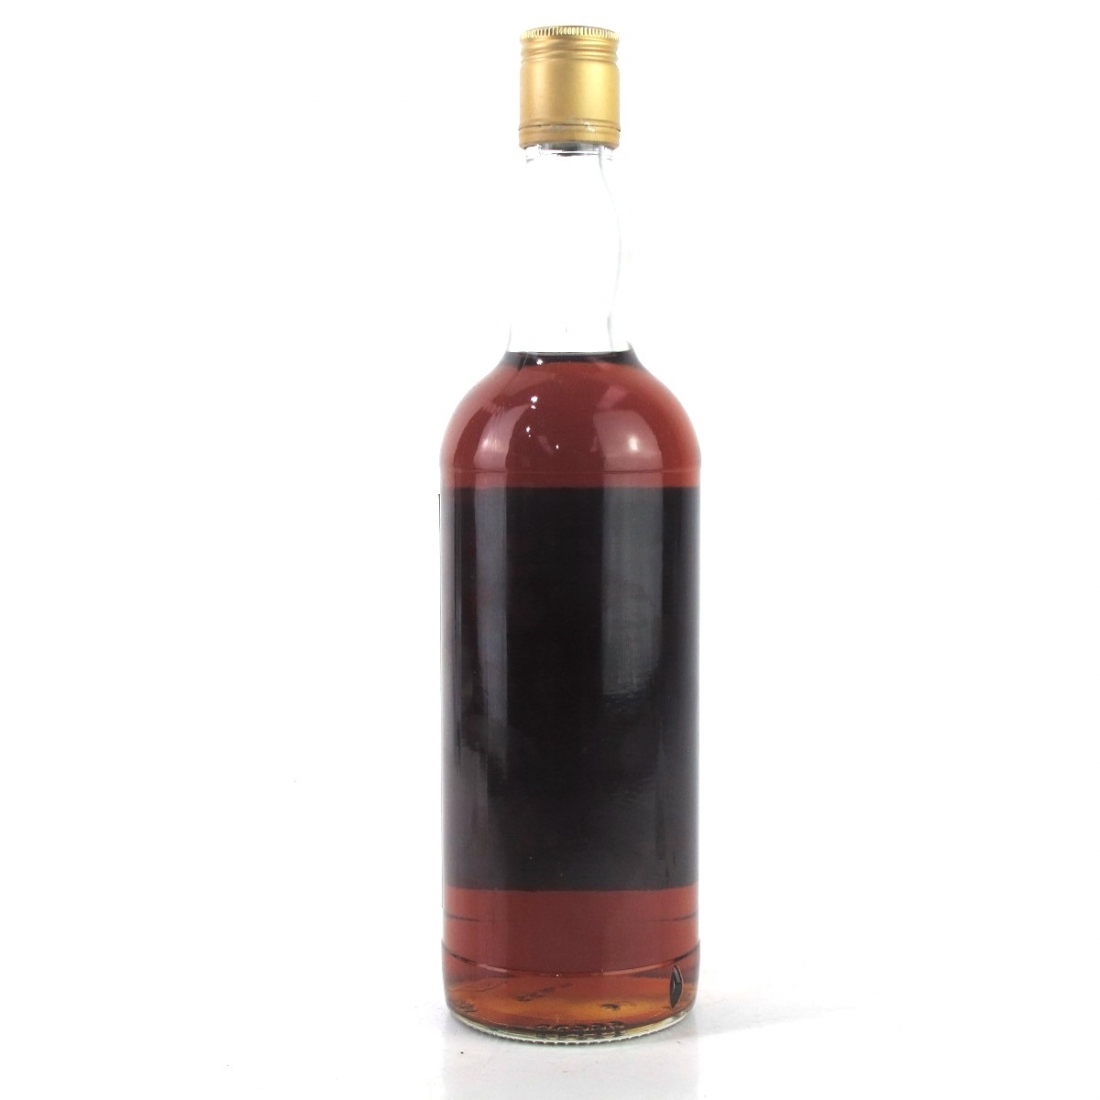 Cragganmore 1971 Gordon and MacPhail 14 Year Old